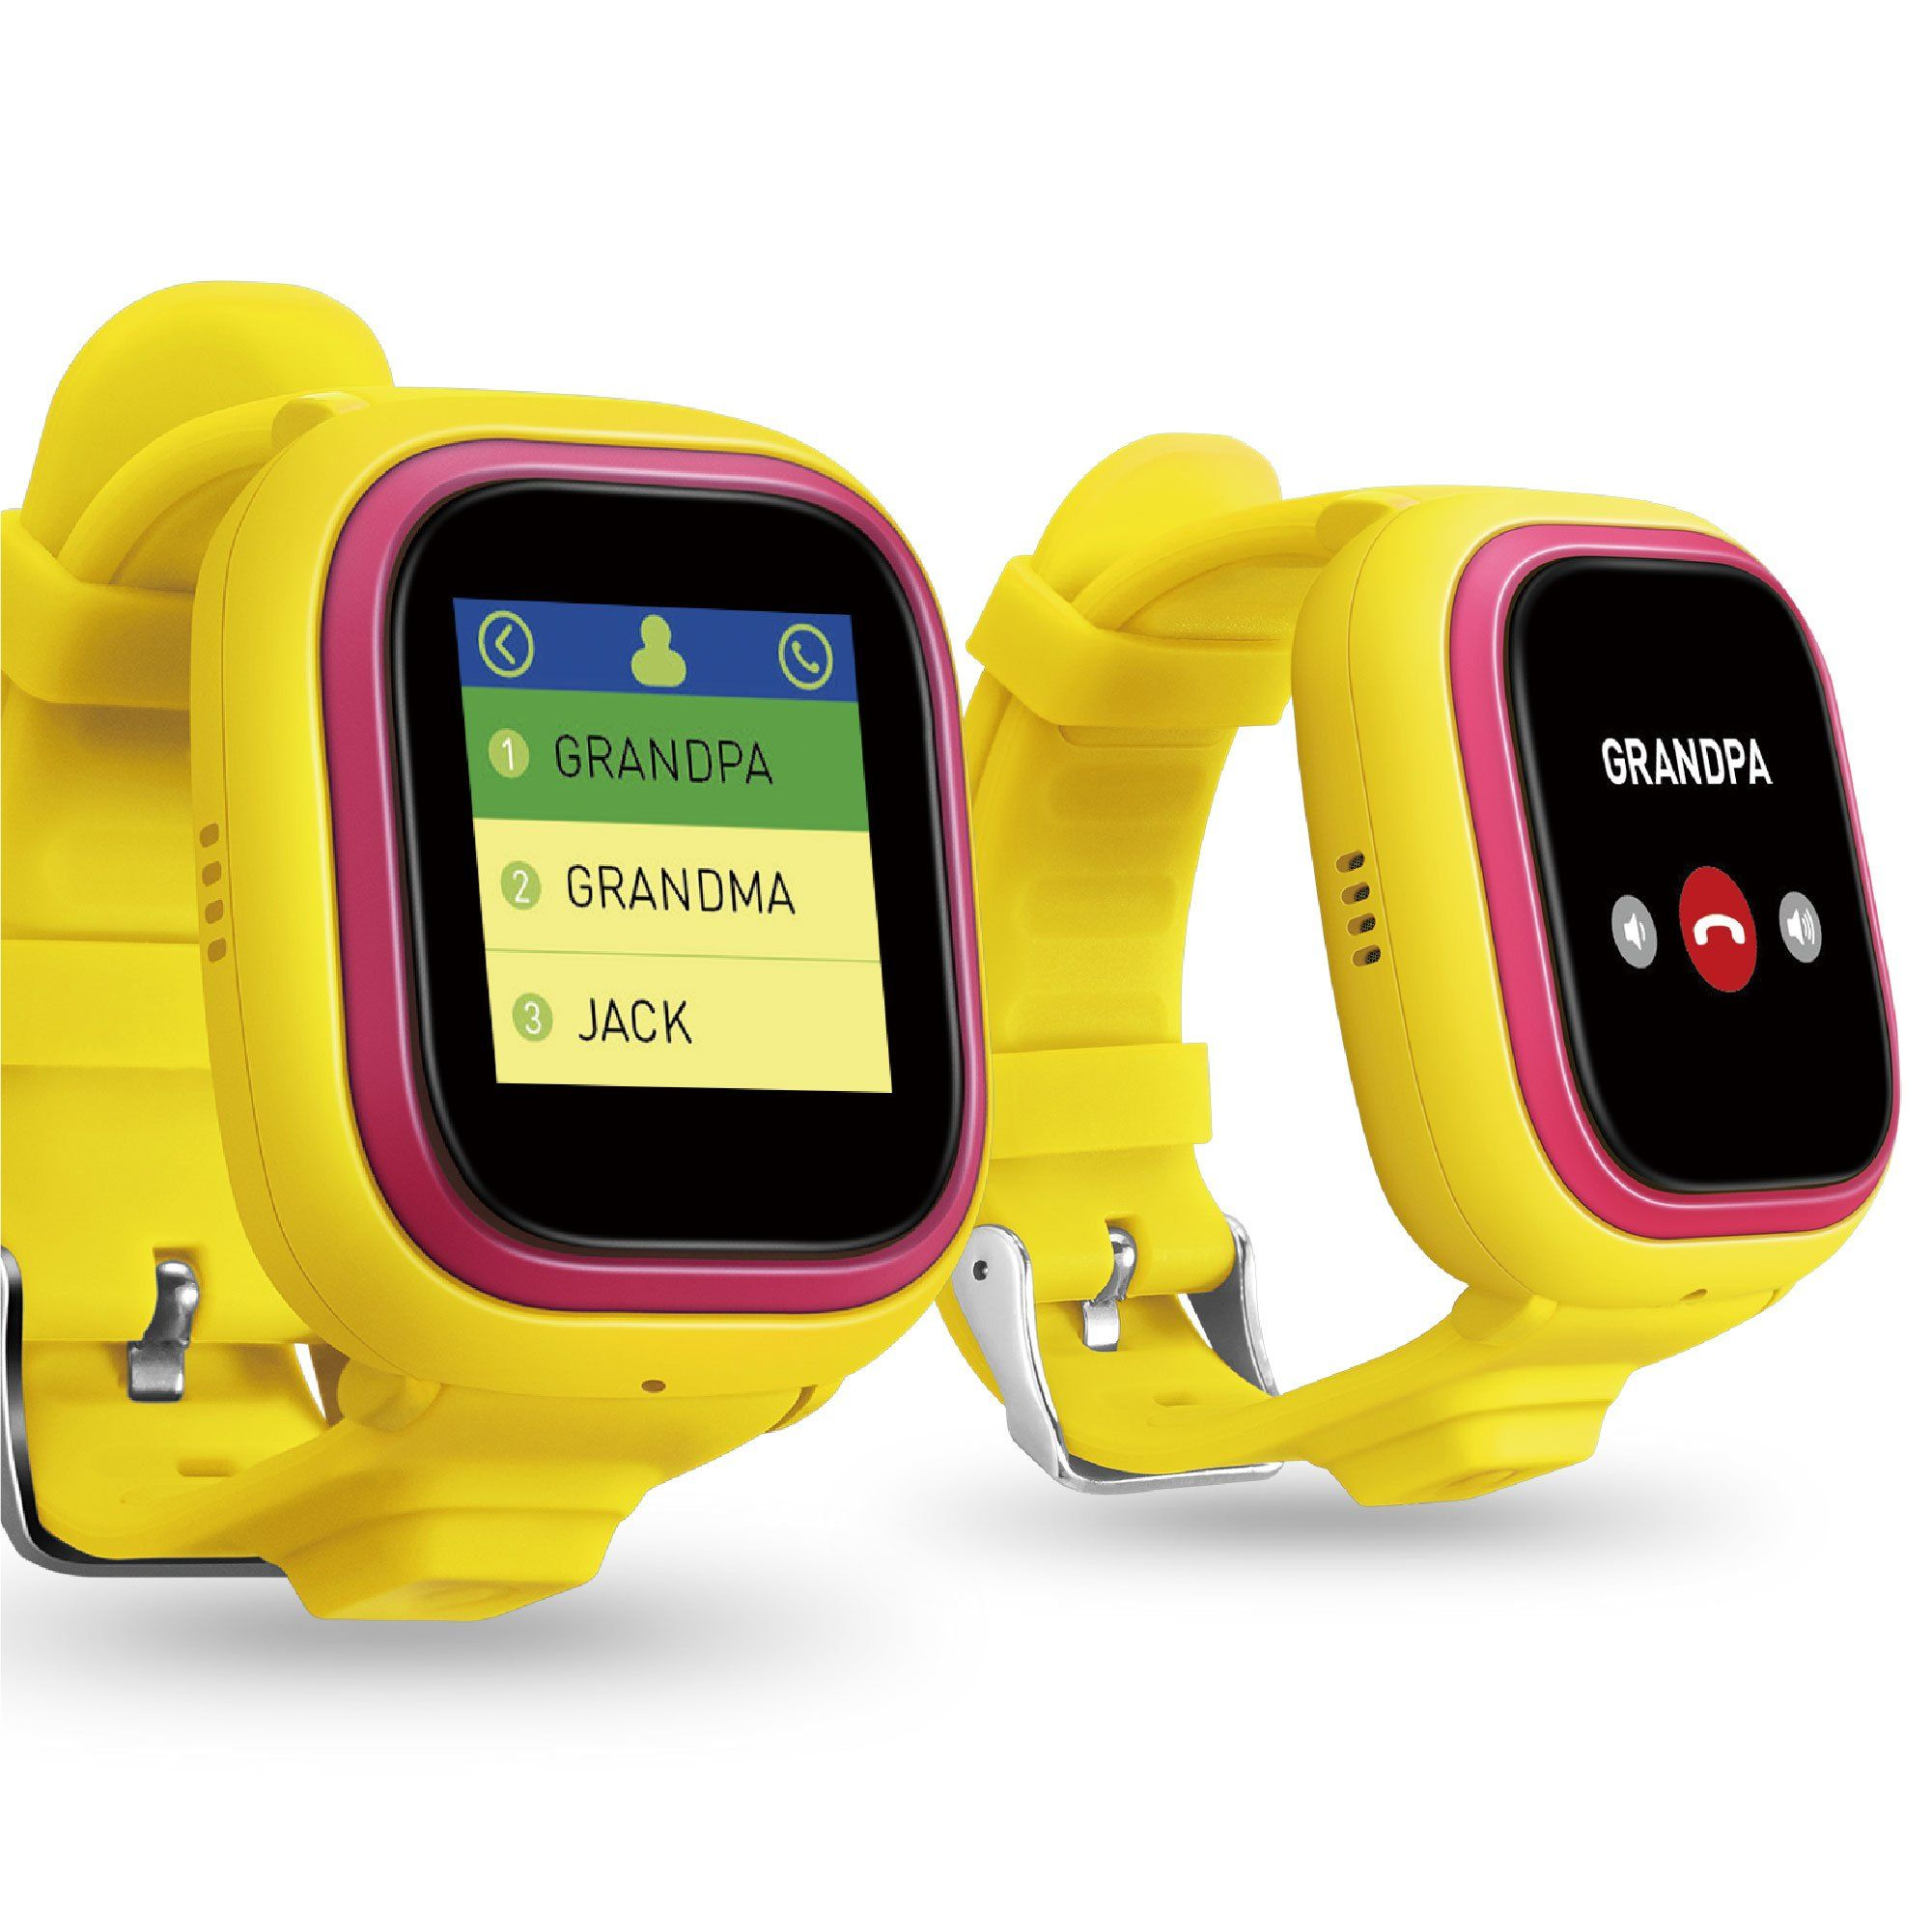 NEW TickTalk 2 0 Touch Screen Kids Smart Watch GPS Phone watch Anti